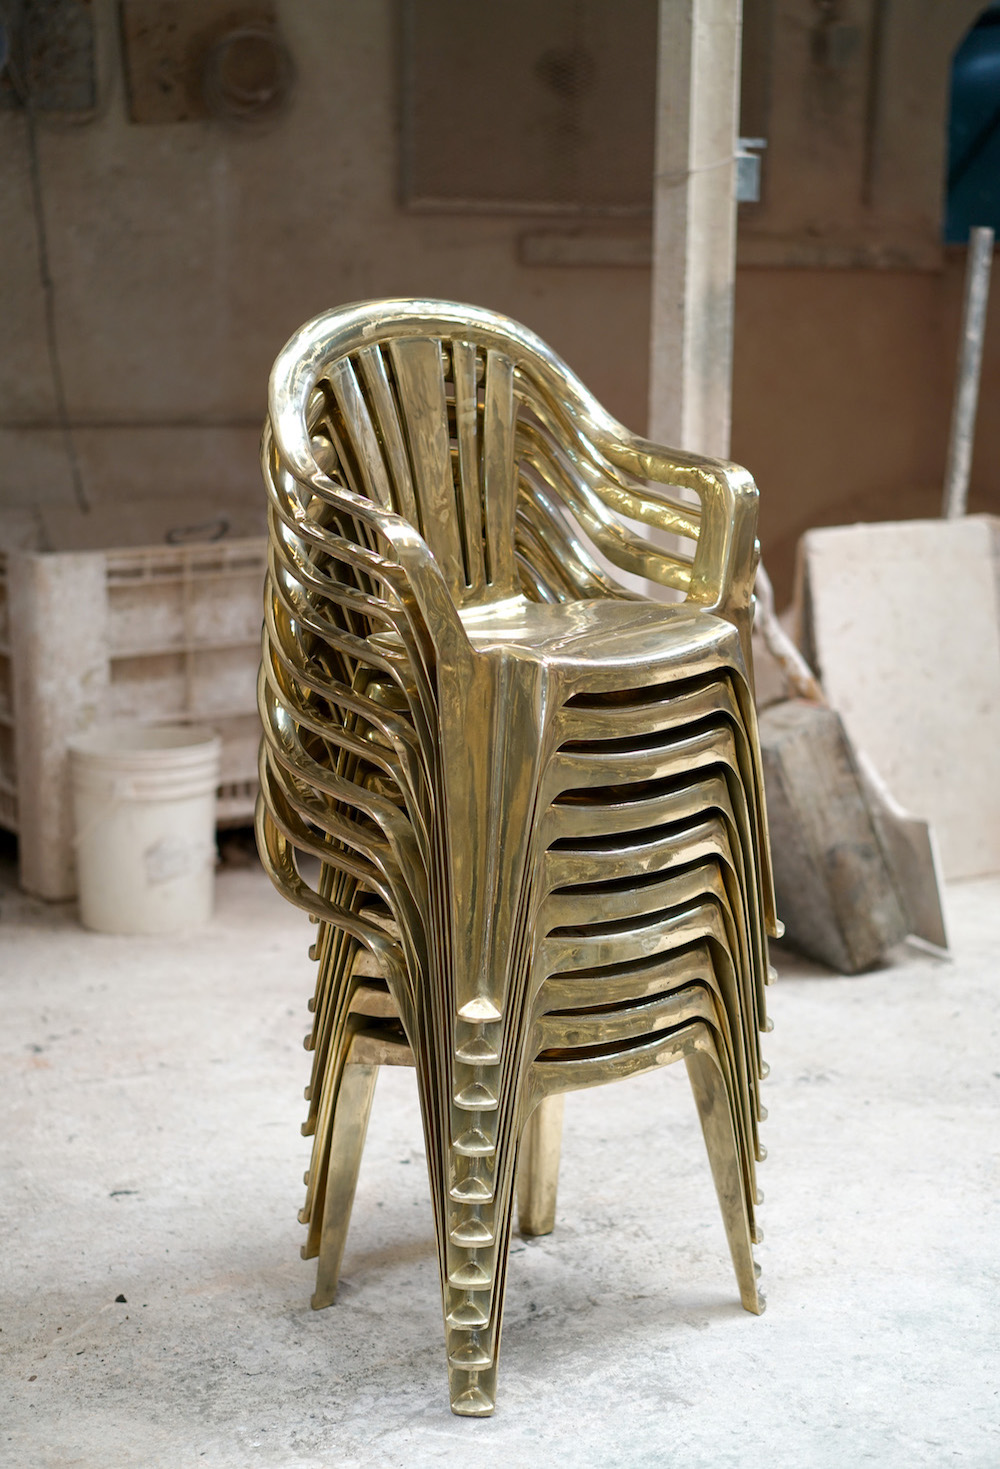 Luna Paiva Stacked Chairs